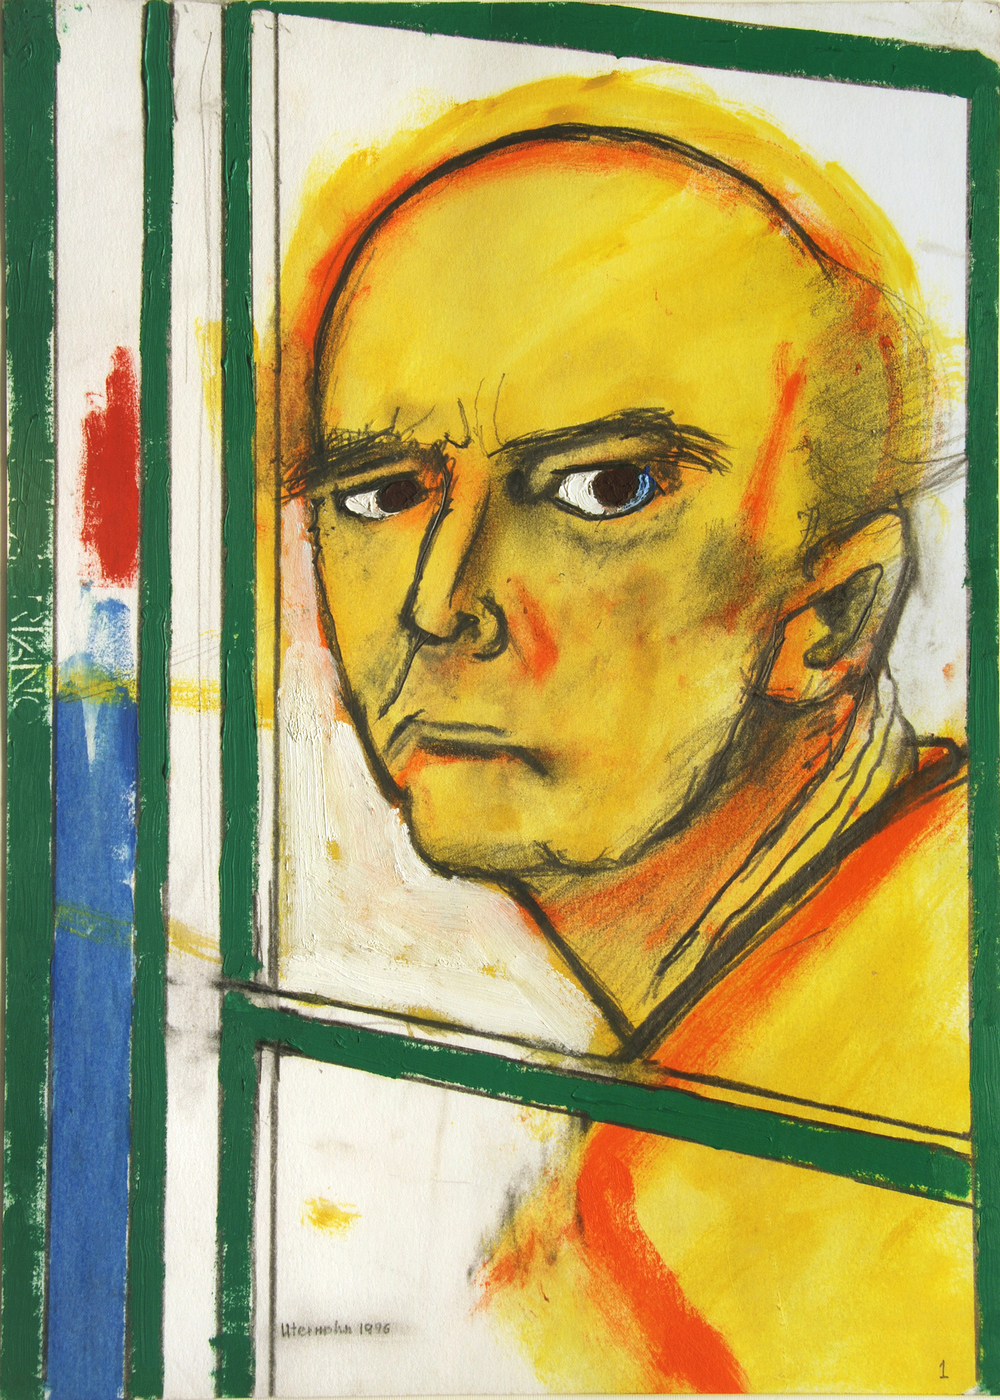 """Self Portrait (with Easel, Yellow and Green),"" 1996, archival ink jet print, 24x18 in."